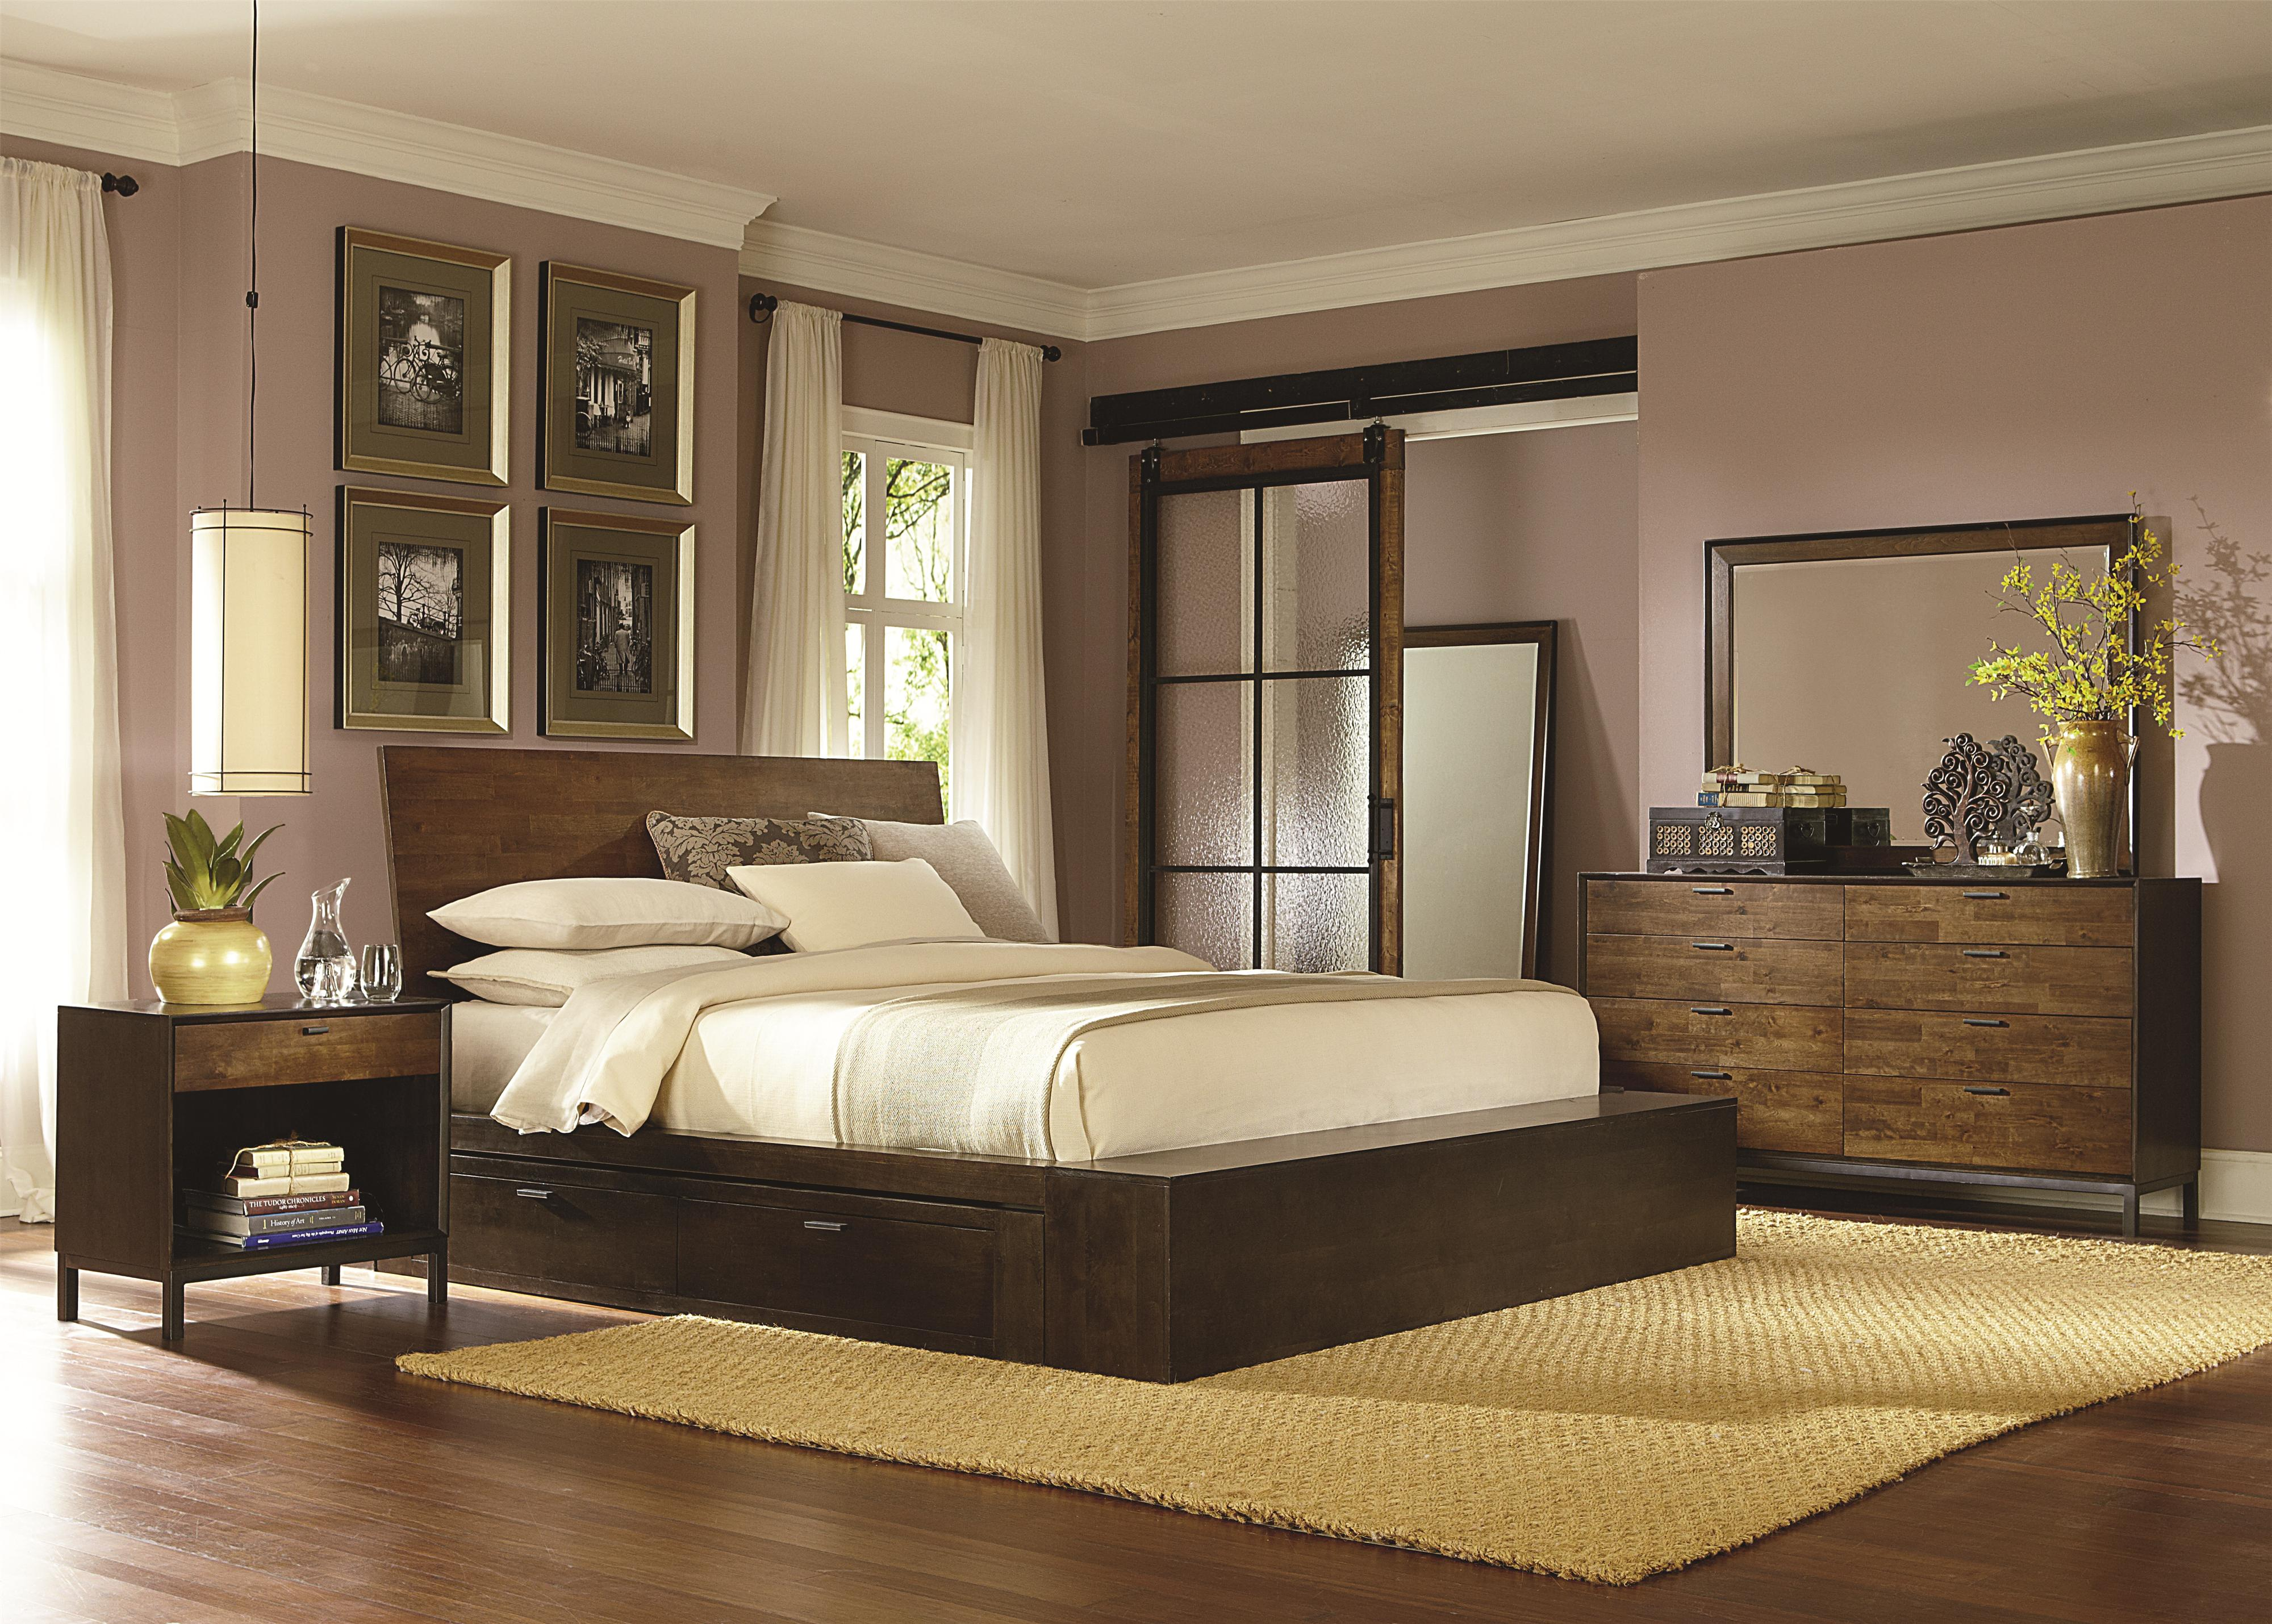 Queen Platform Bed w  Two Storage Drawers. Complete Platform Queen Bed with Two Storage Drawers by Legacy